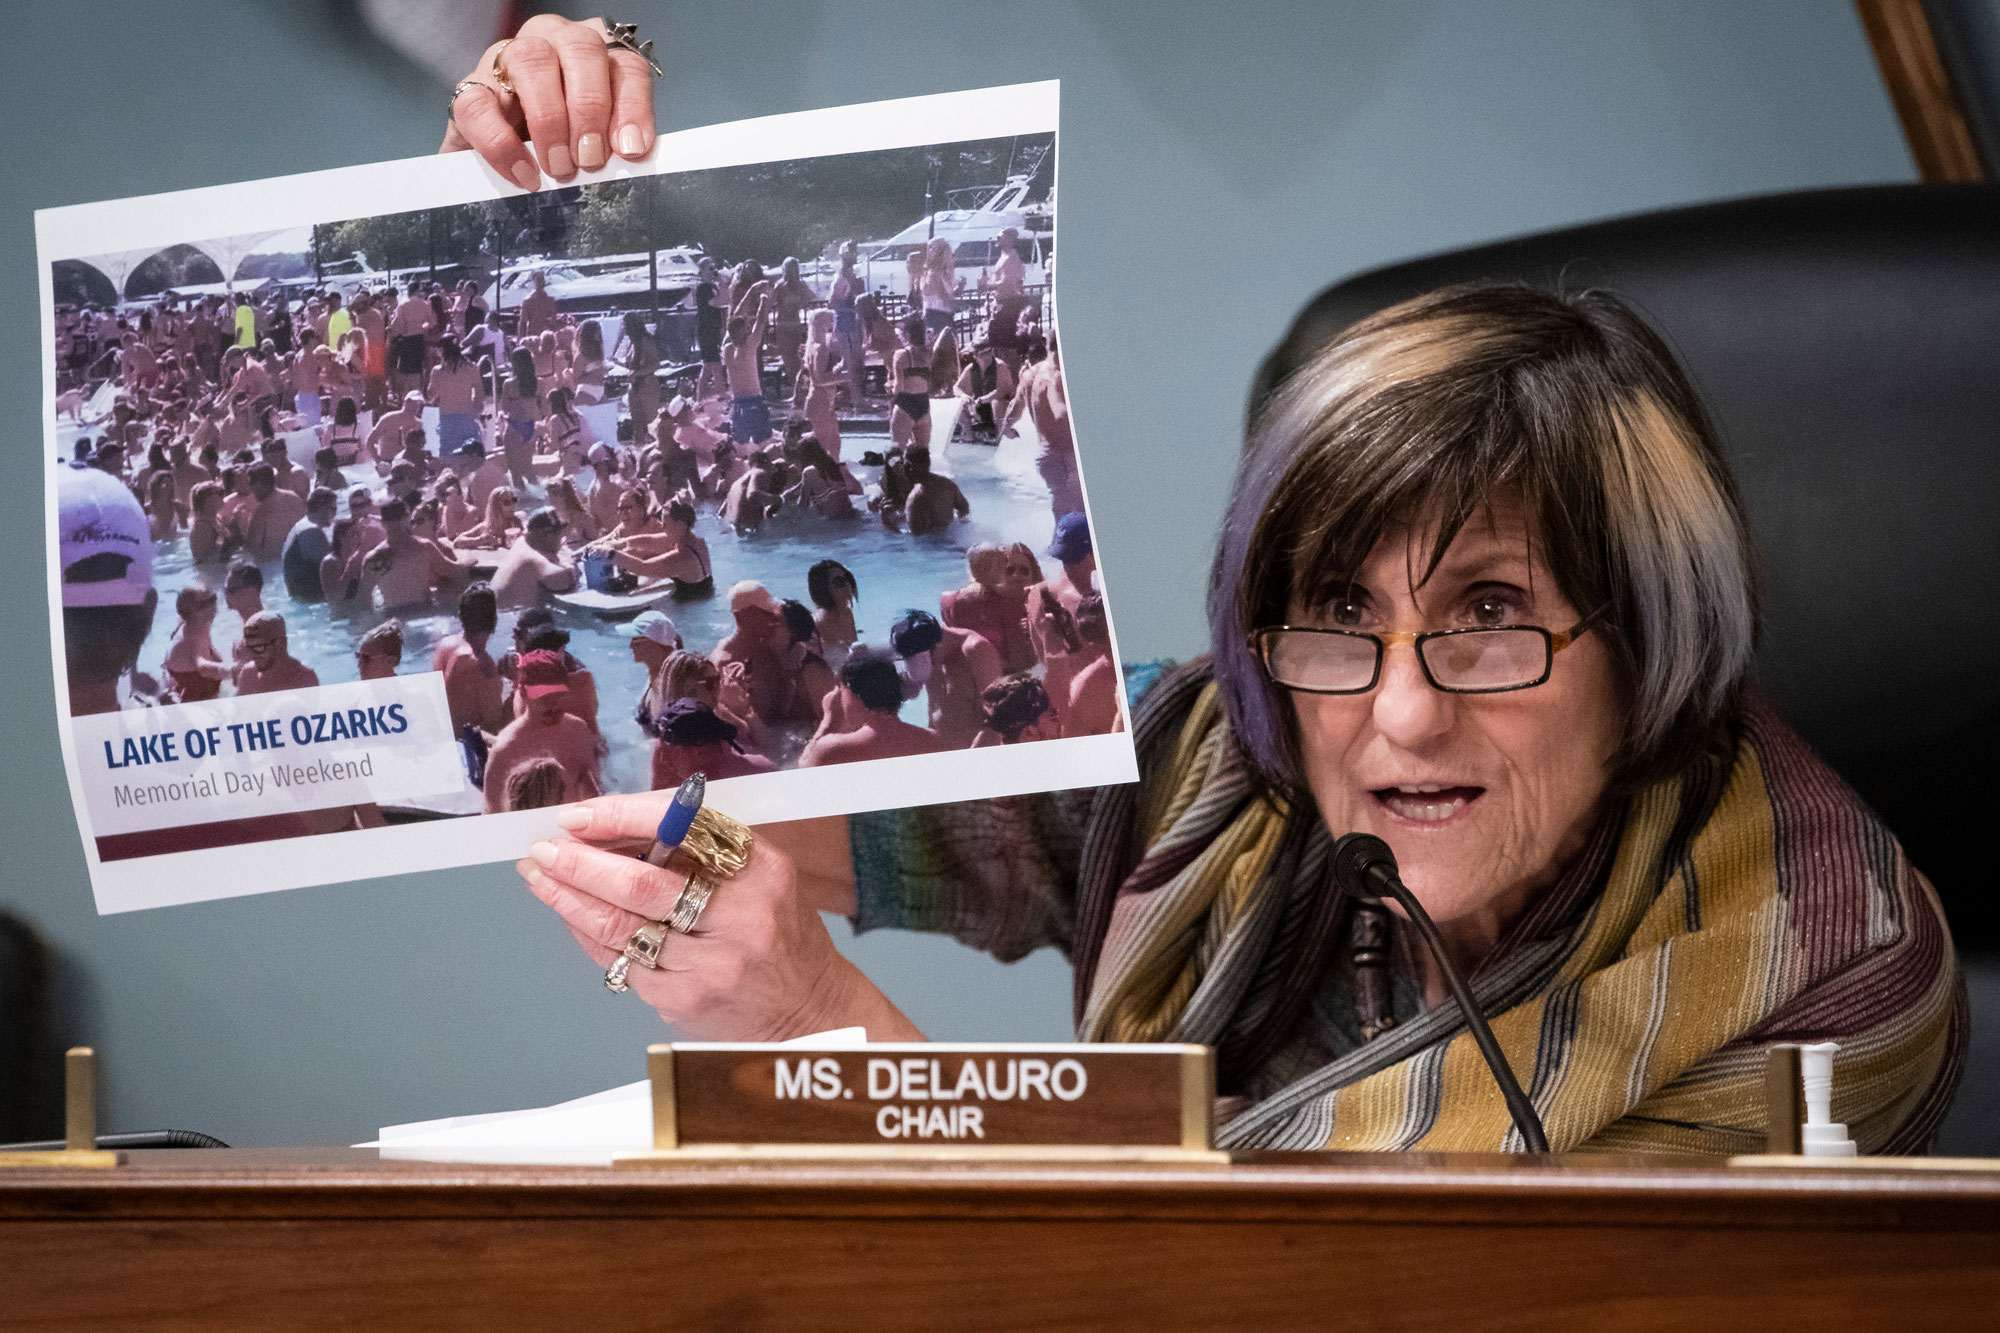 Representative Rosa DeLauro, a Democrat from Connecticut and chairwoman of the House Appropriations Subcommittee on Labor, Health and Human Services, Education, and Related Agencies, holds a photograph from the Lake of the Ozarks in Missouri on Memorial Day Weekend, during a hearing on Capitol Hill in Washington, D.C., U.S., on June 4.